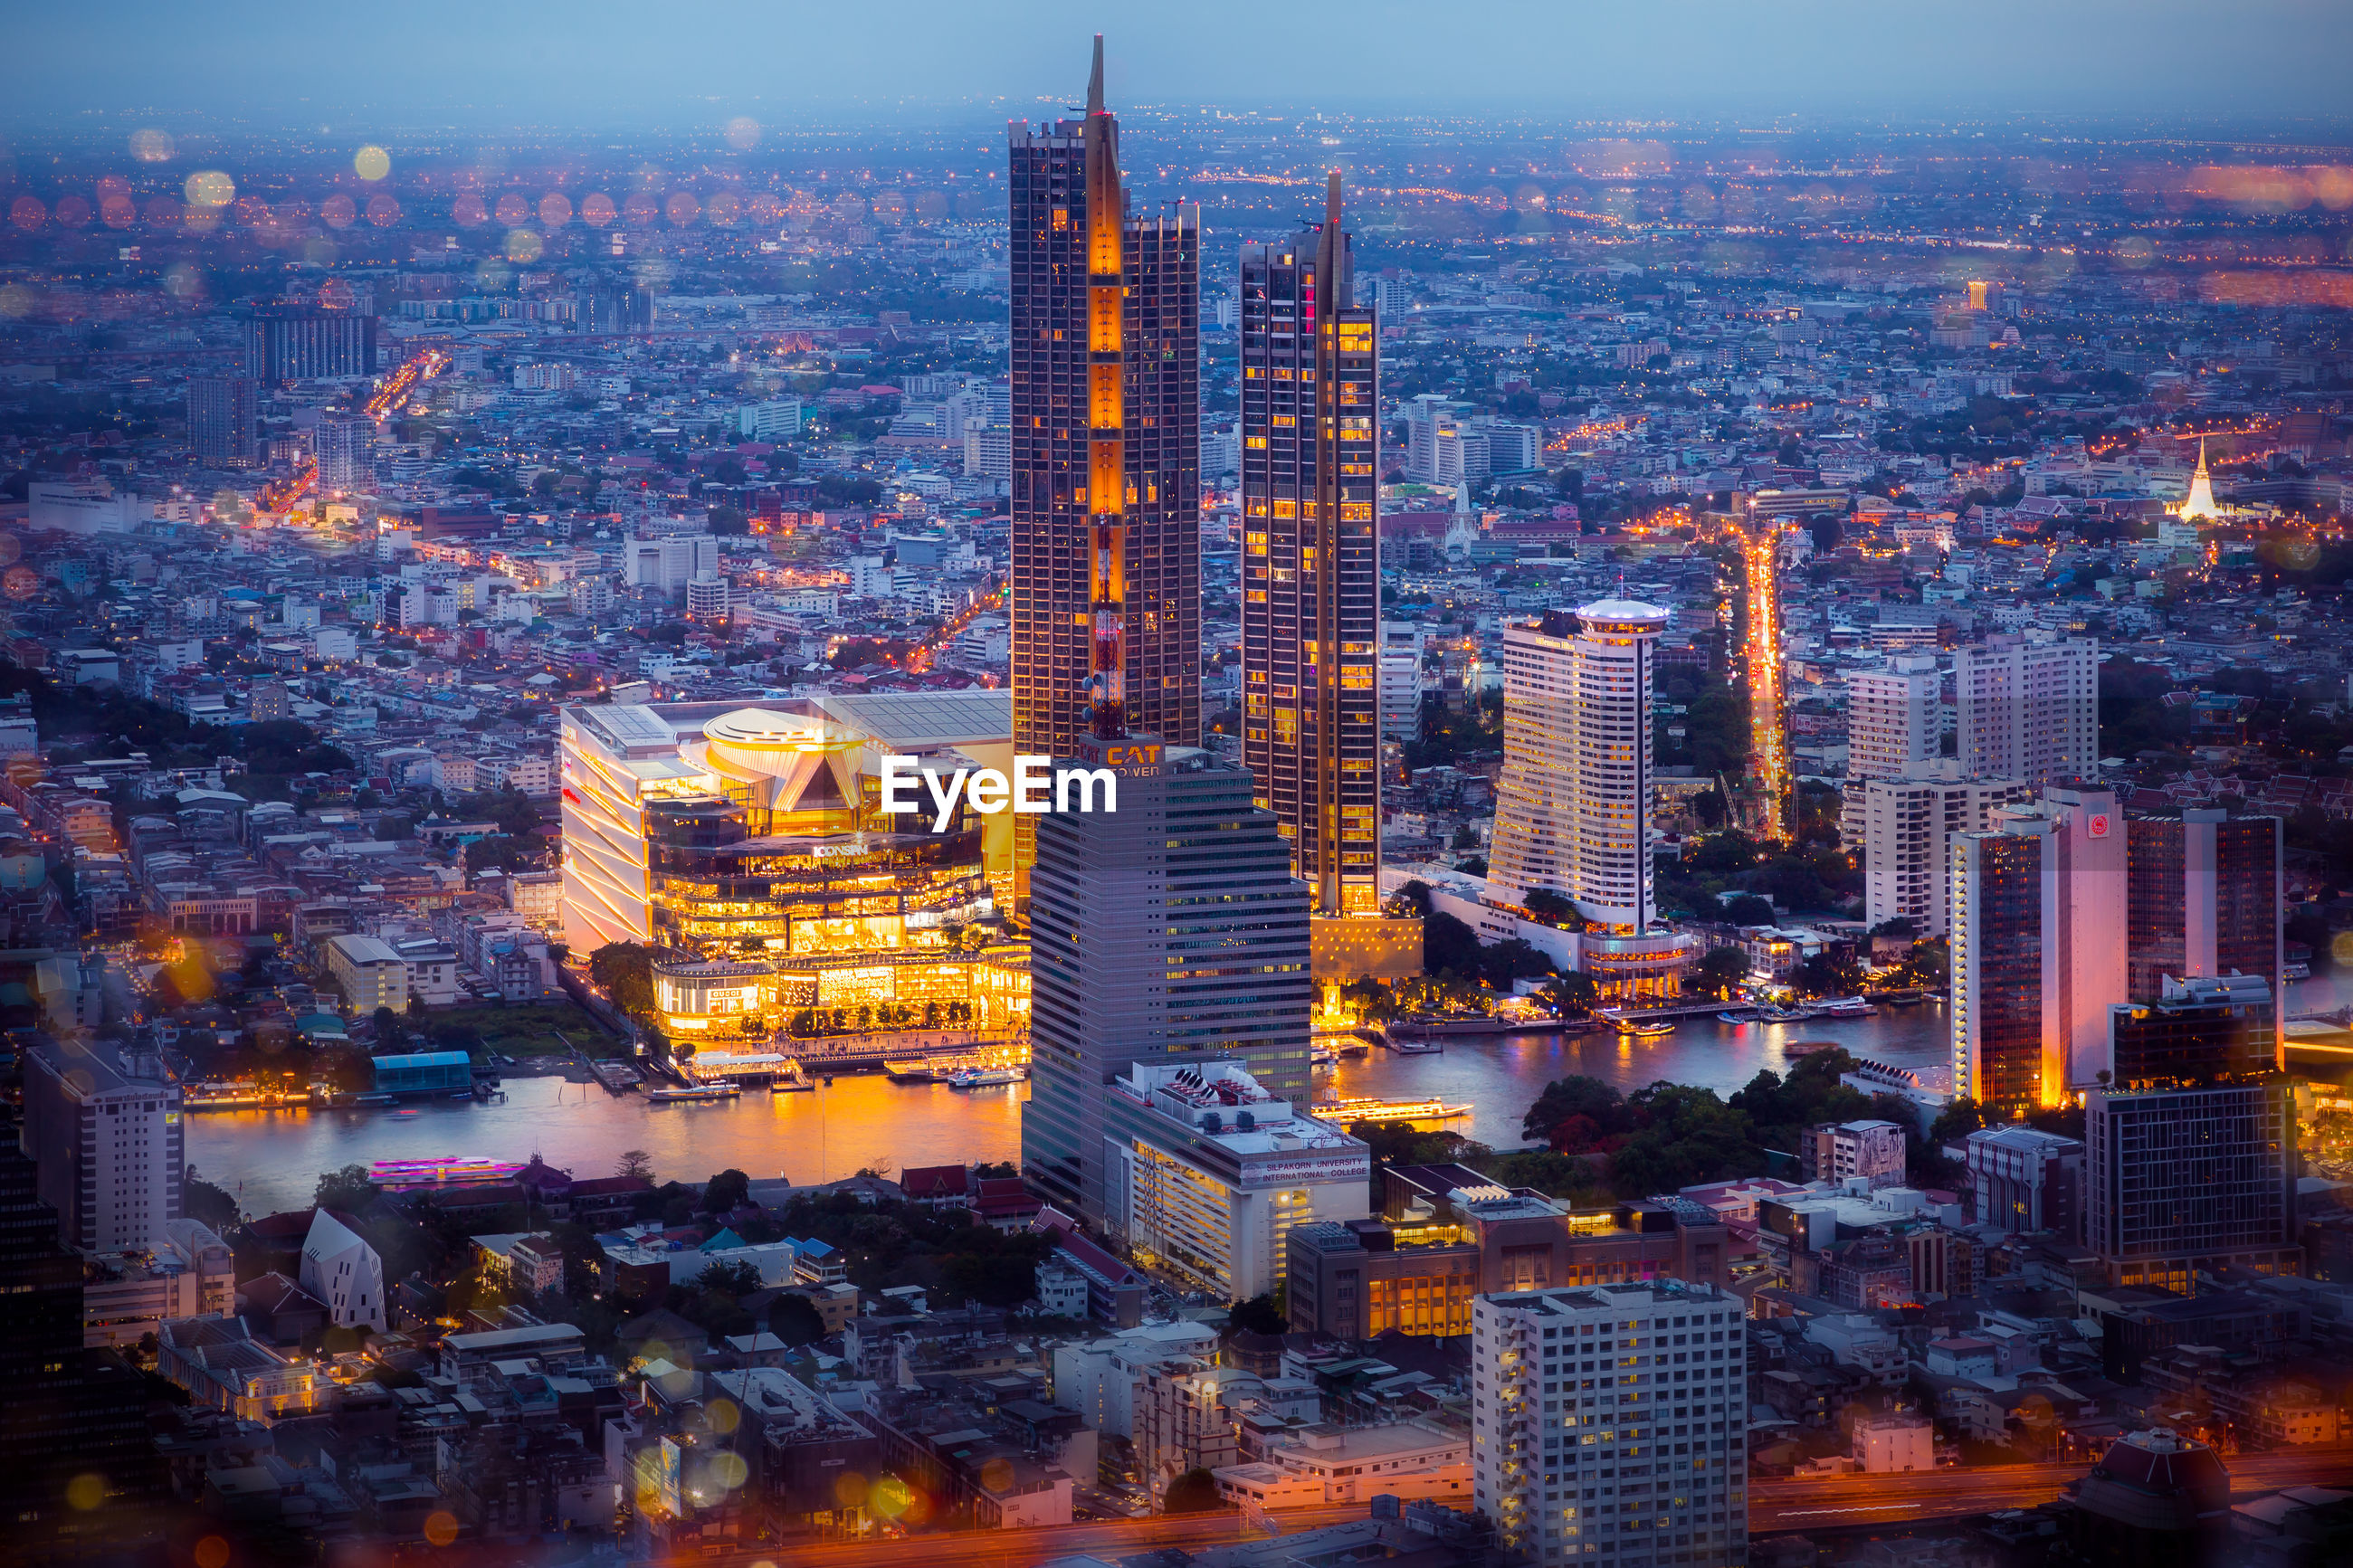 AERIAL VIEW OF CITY BUILDINGS AT DUSK